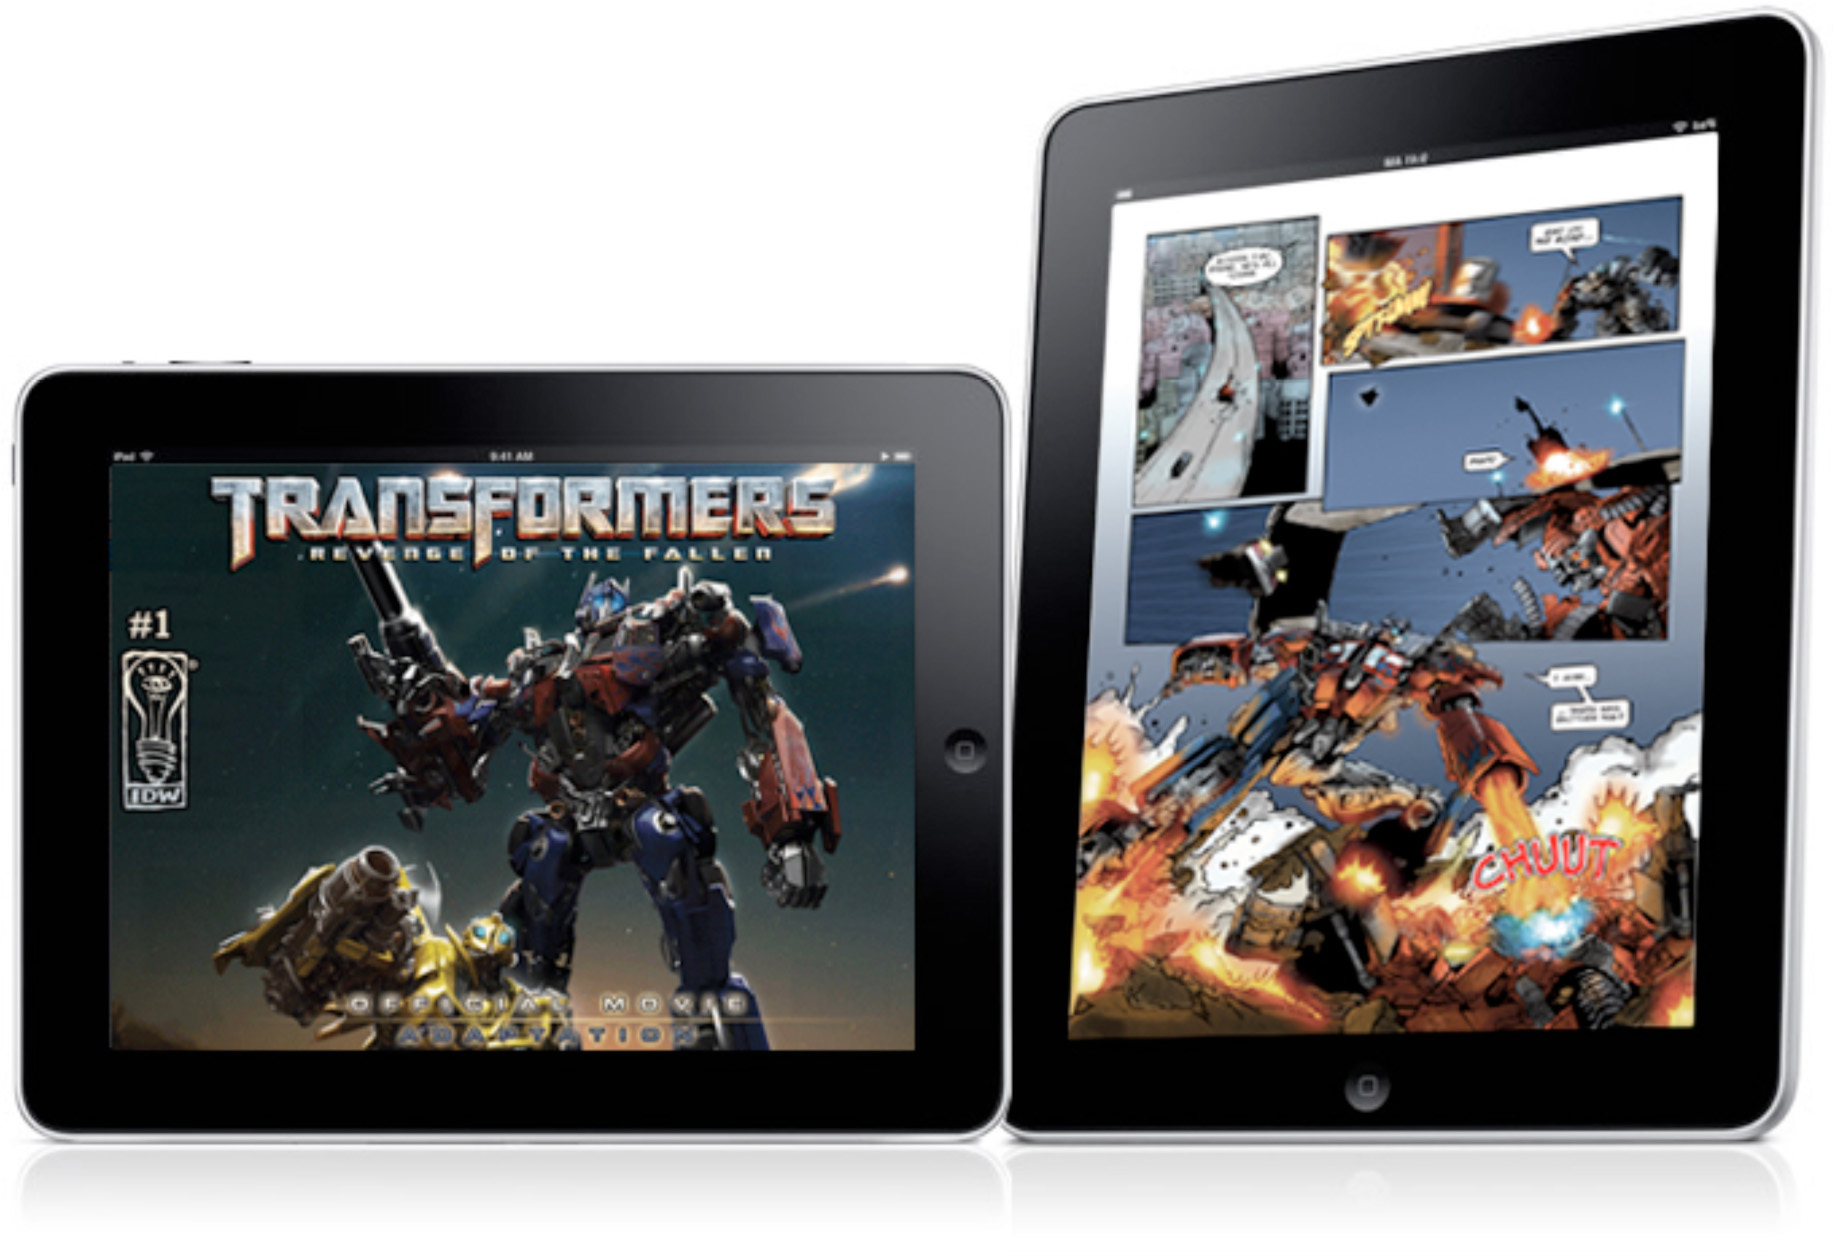 TRANSFORMERS on the iPad